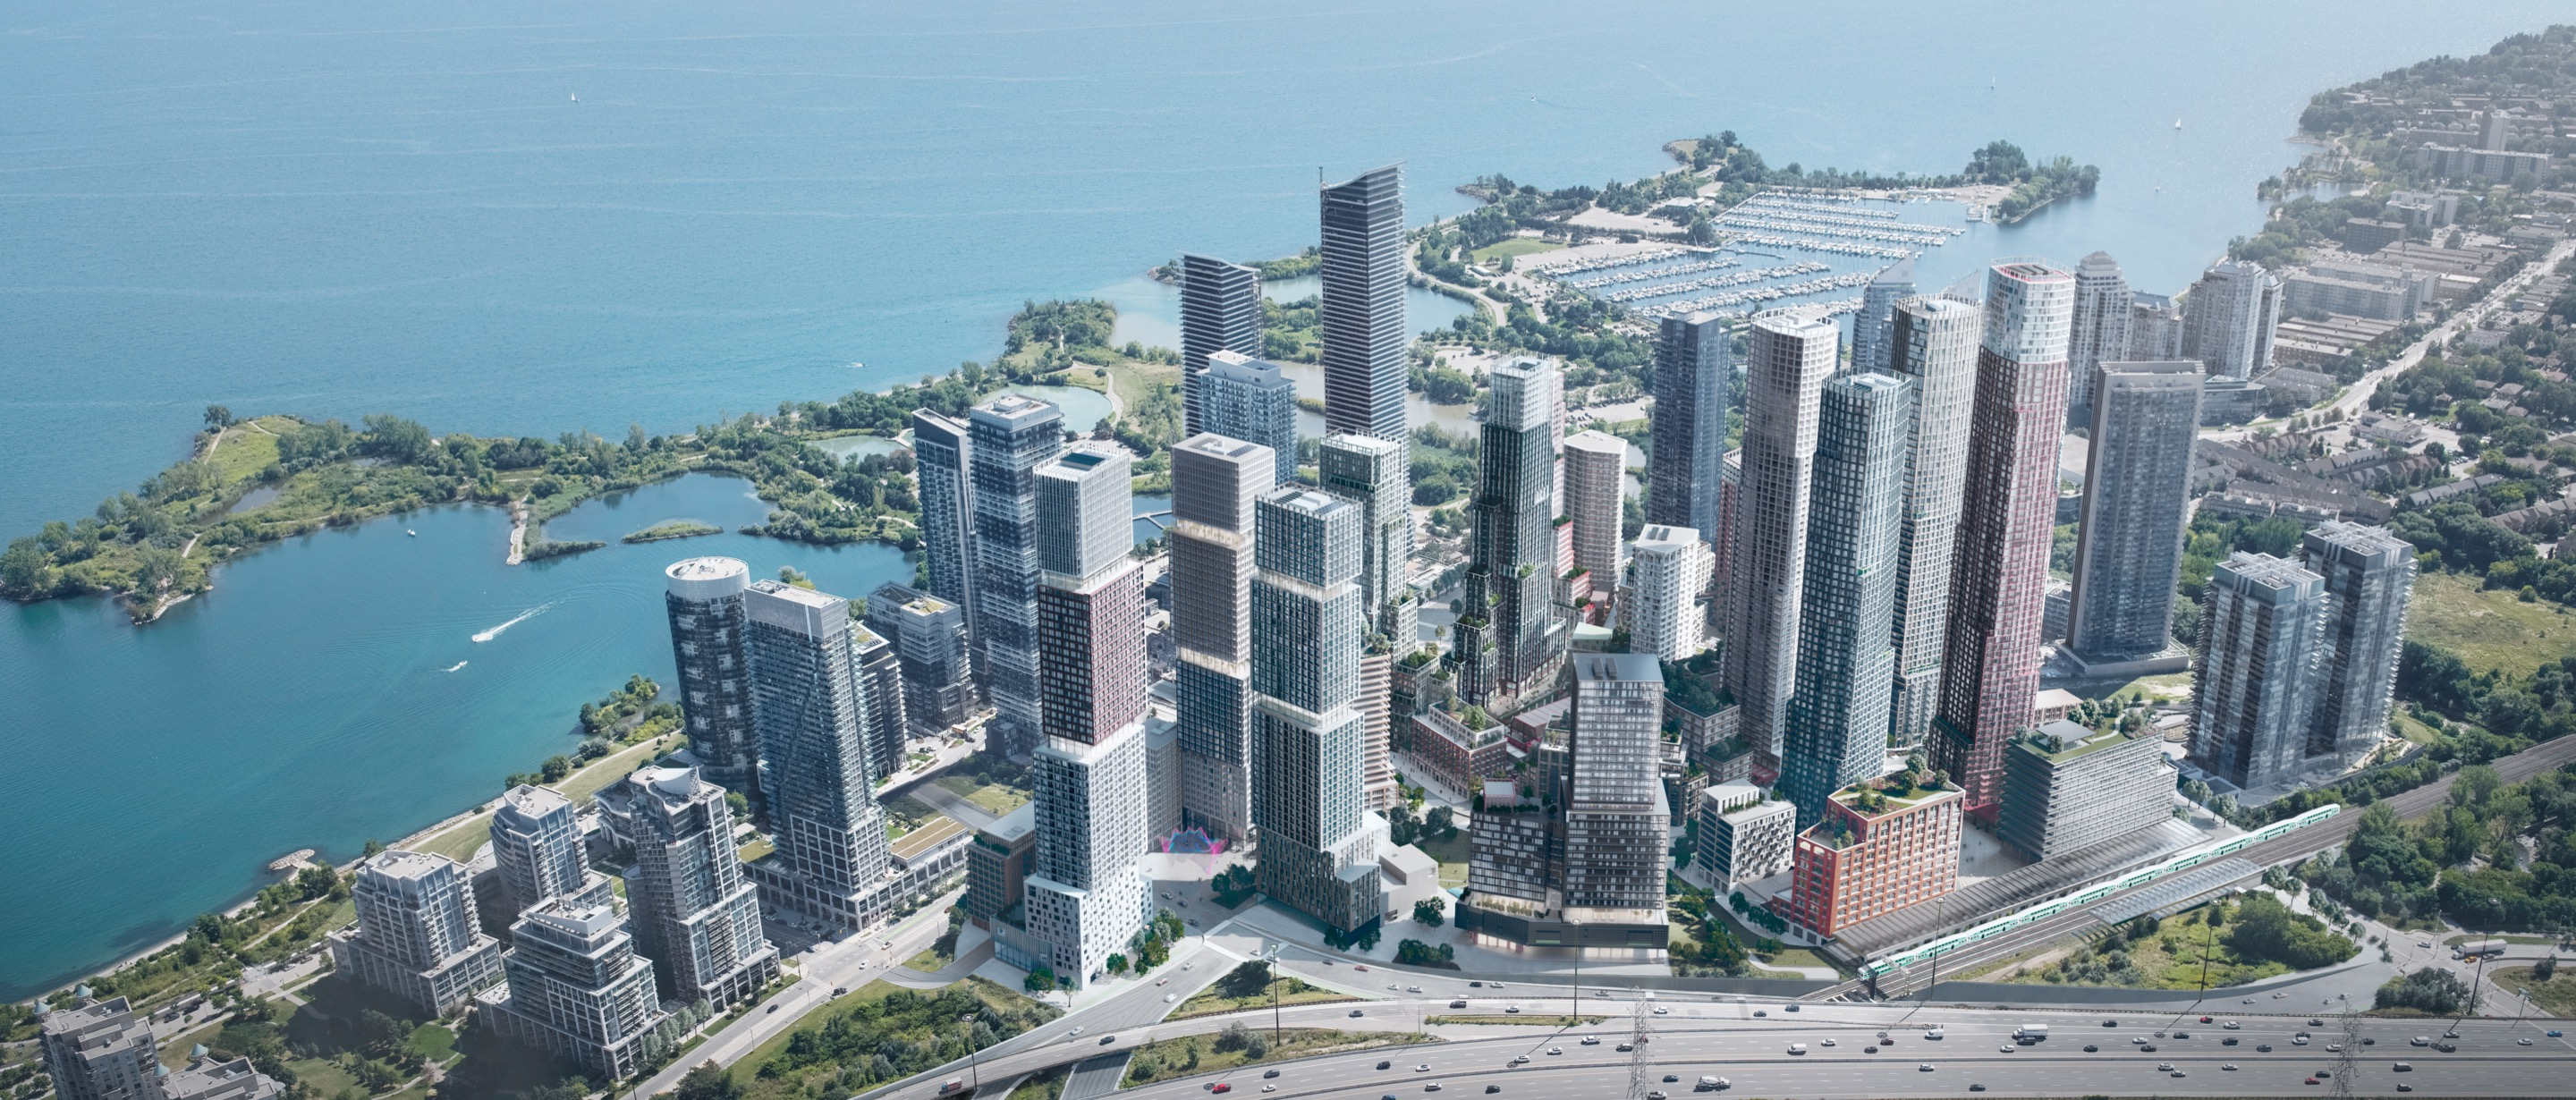 Aerial rendering with tall buildings along the waterfront.